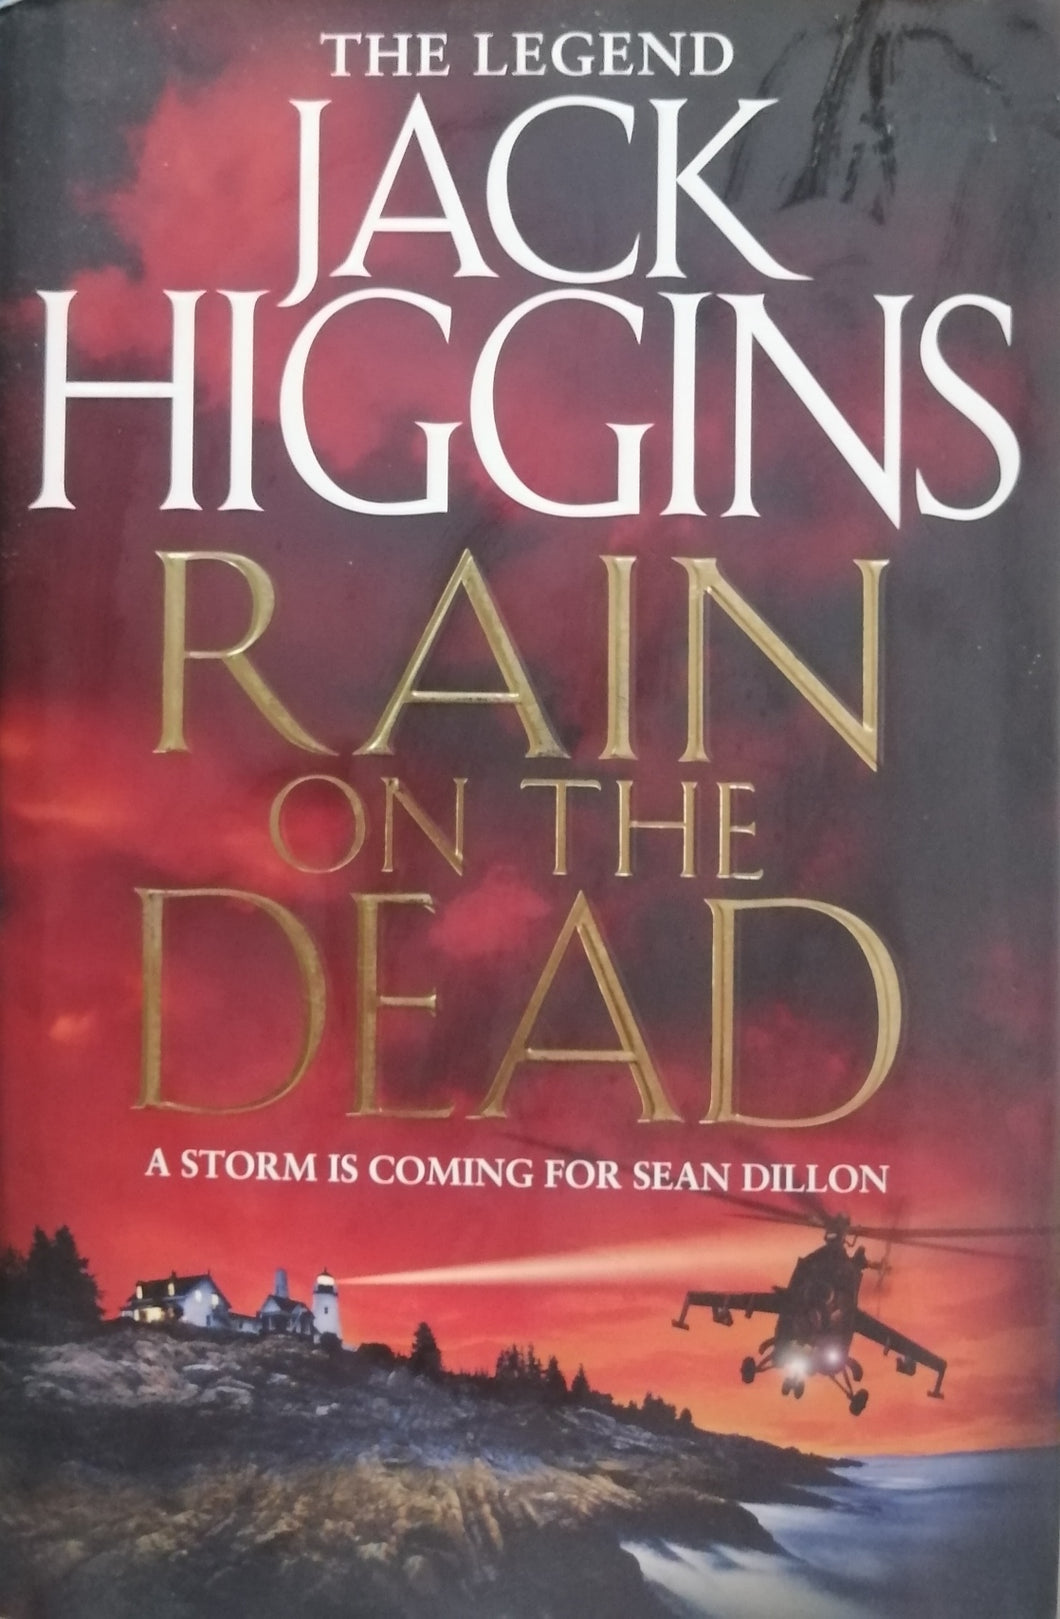 Rain on the dead by Jack Higgins